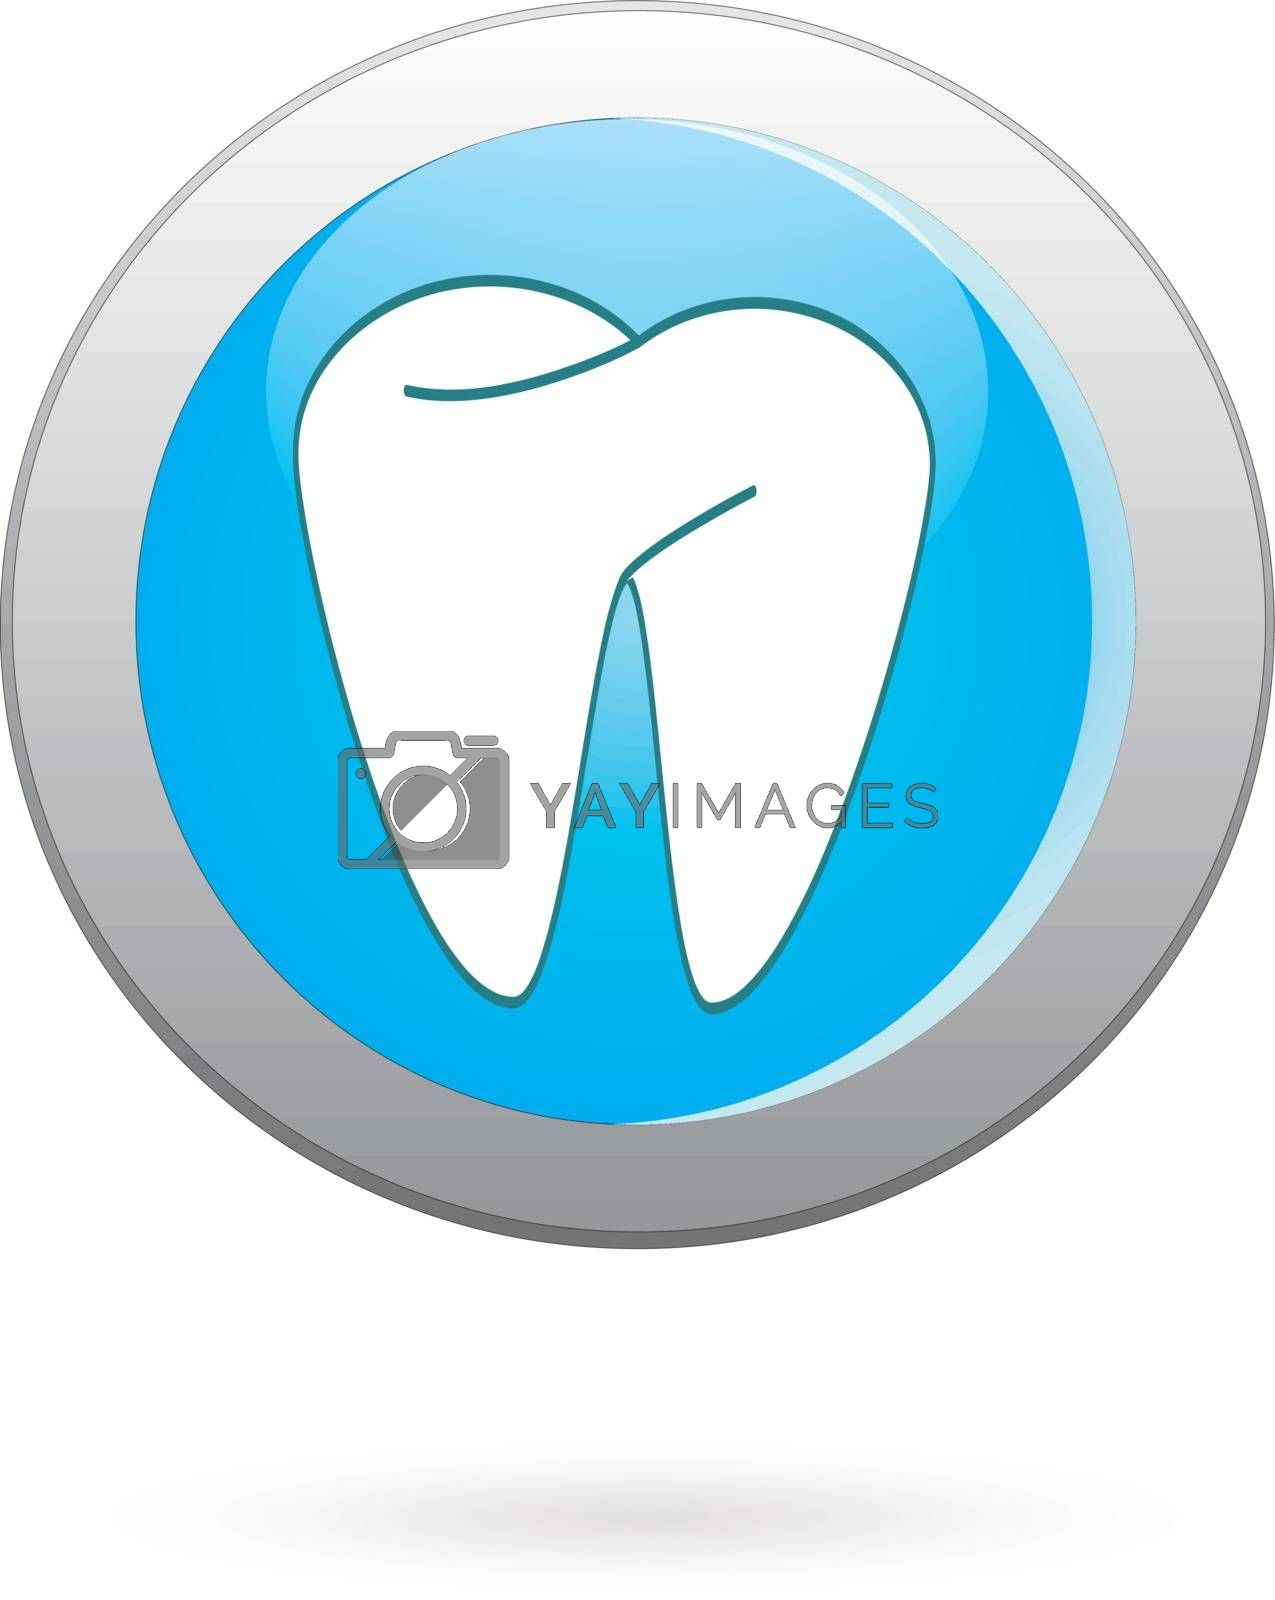 Oral hygiene icon- vector illustration  Clean and bright designs. Beautiful color combinations.